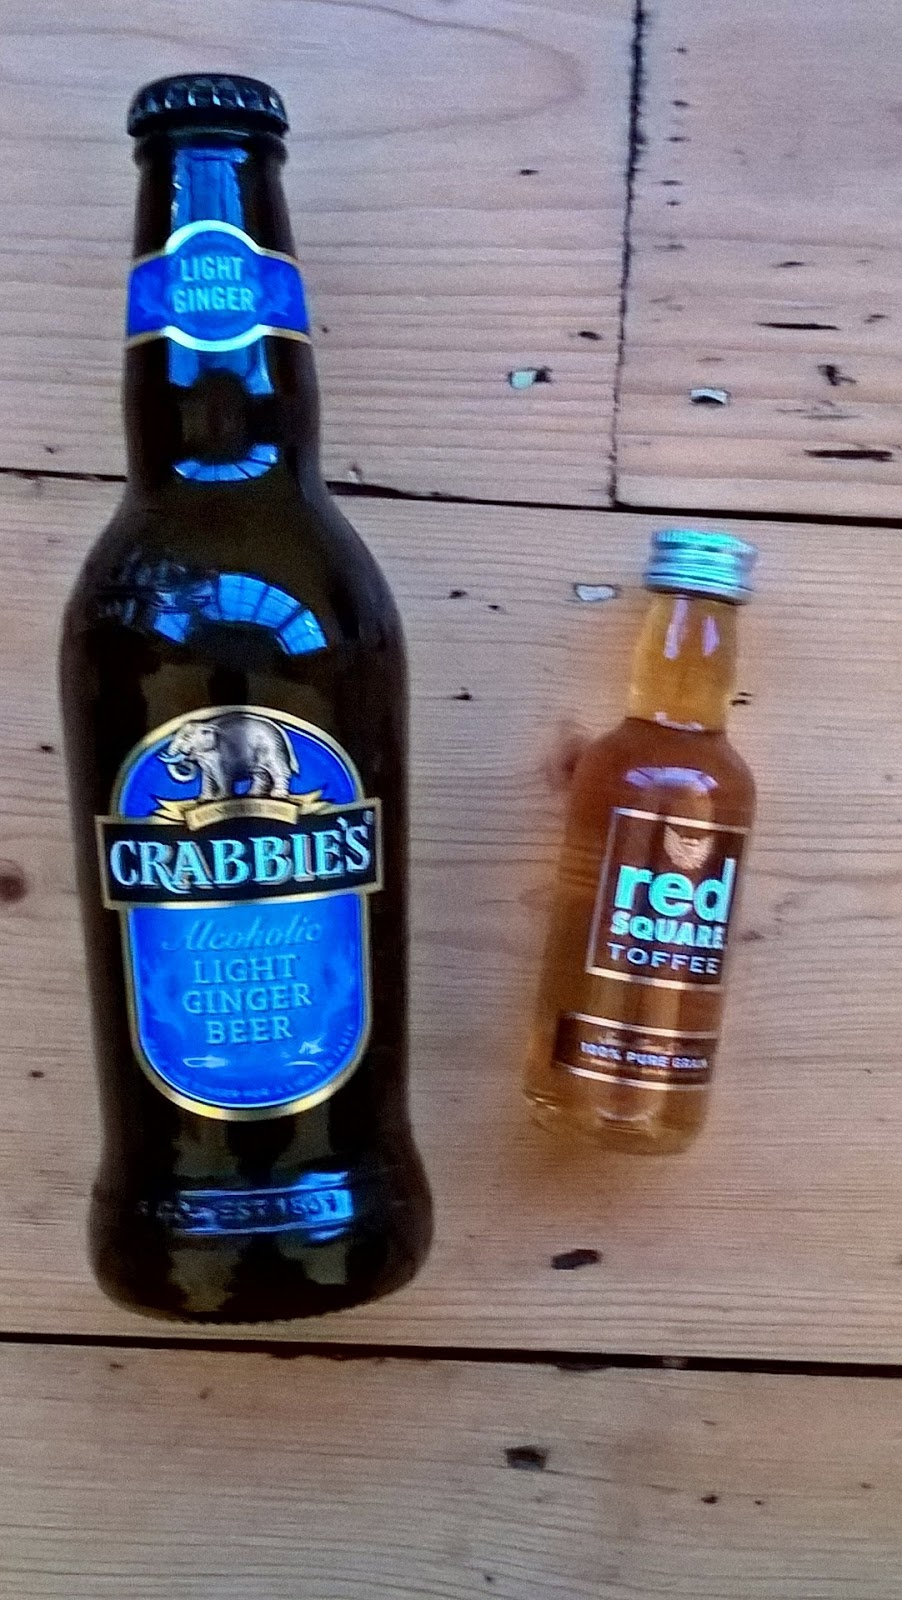 Crabbies Alcoholic Light Ginger Beer & Red Square Toffee Mini Vodka - Degustabox review - motherdistracted.co.uk